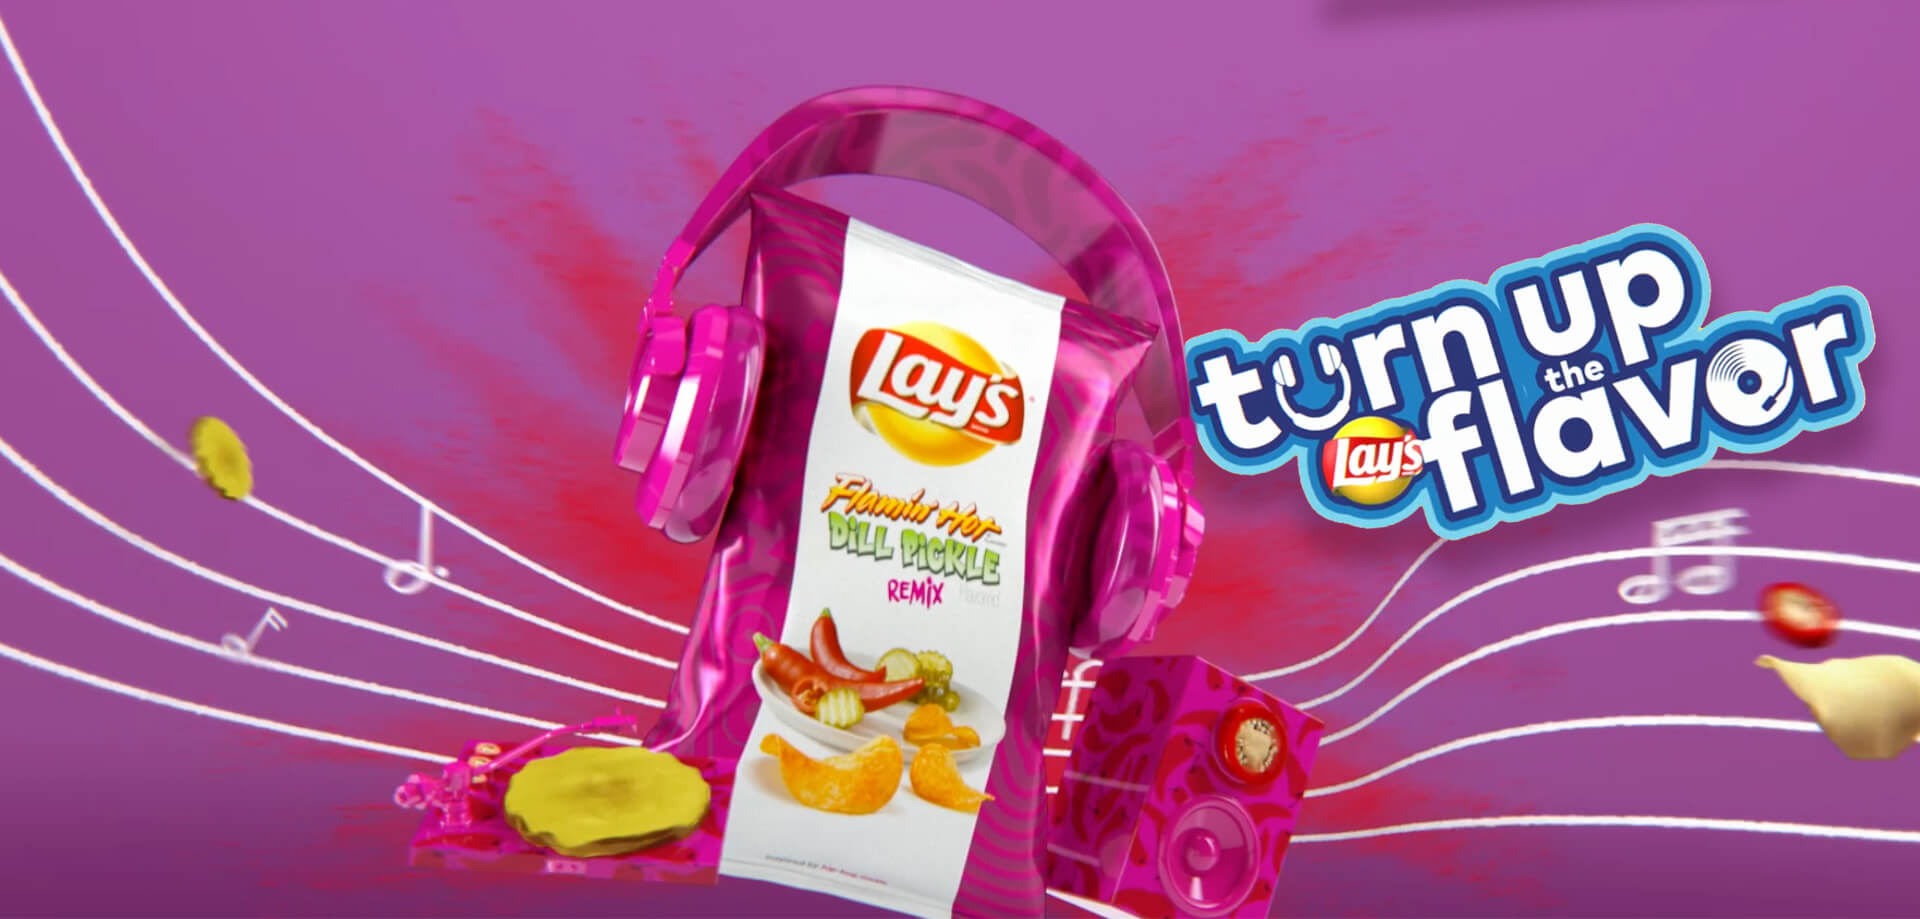 Music based crowdsourcing effort for Lay's, creating new flavors of chips.